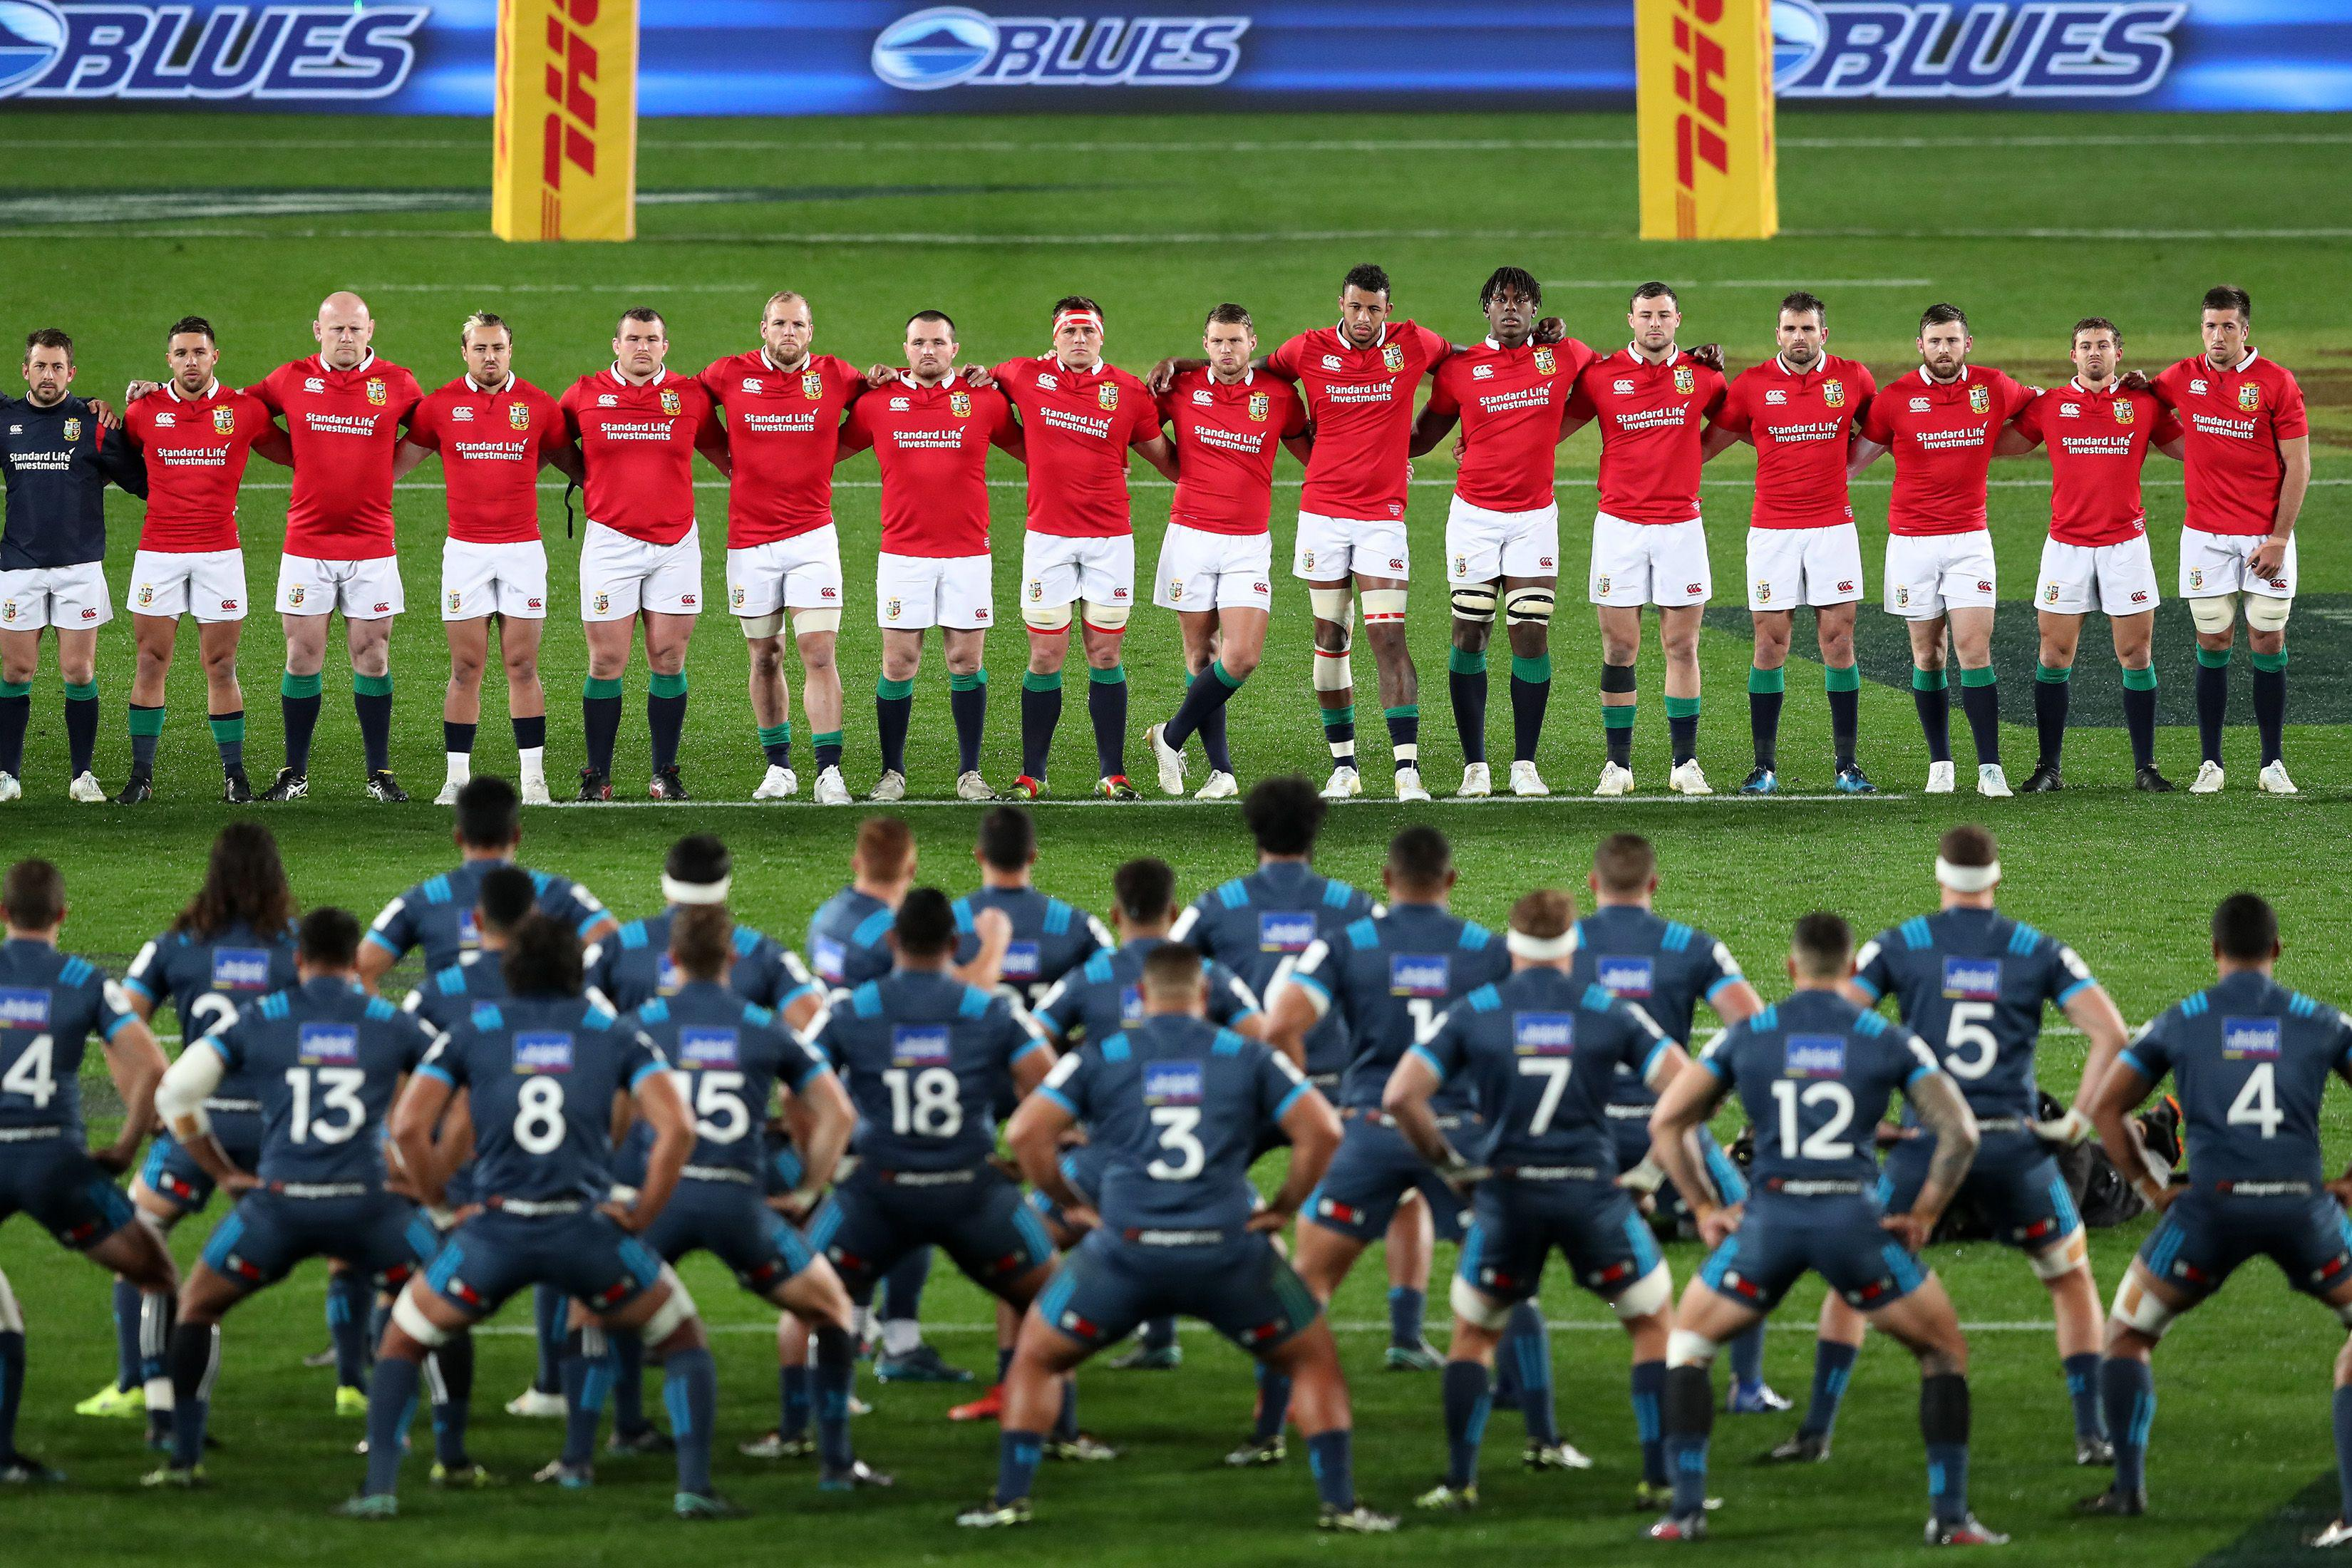 The Lions adopted a traditional approach to the Haka last tour, standing together and binded by their arms